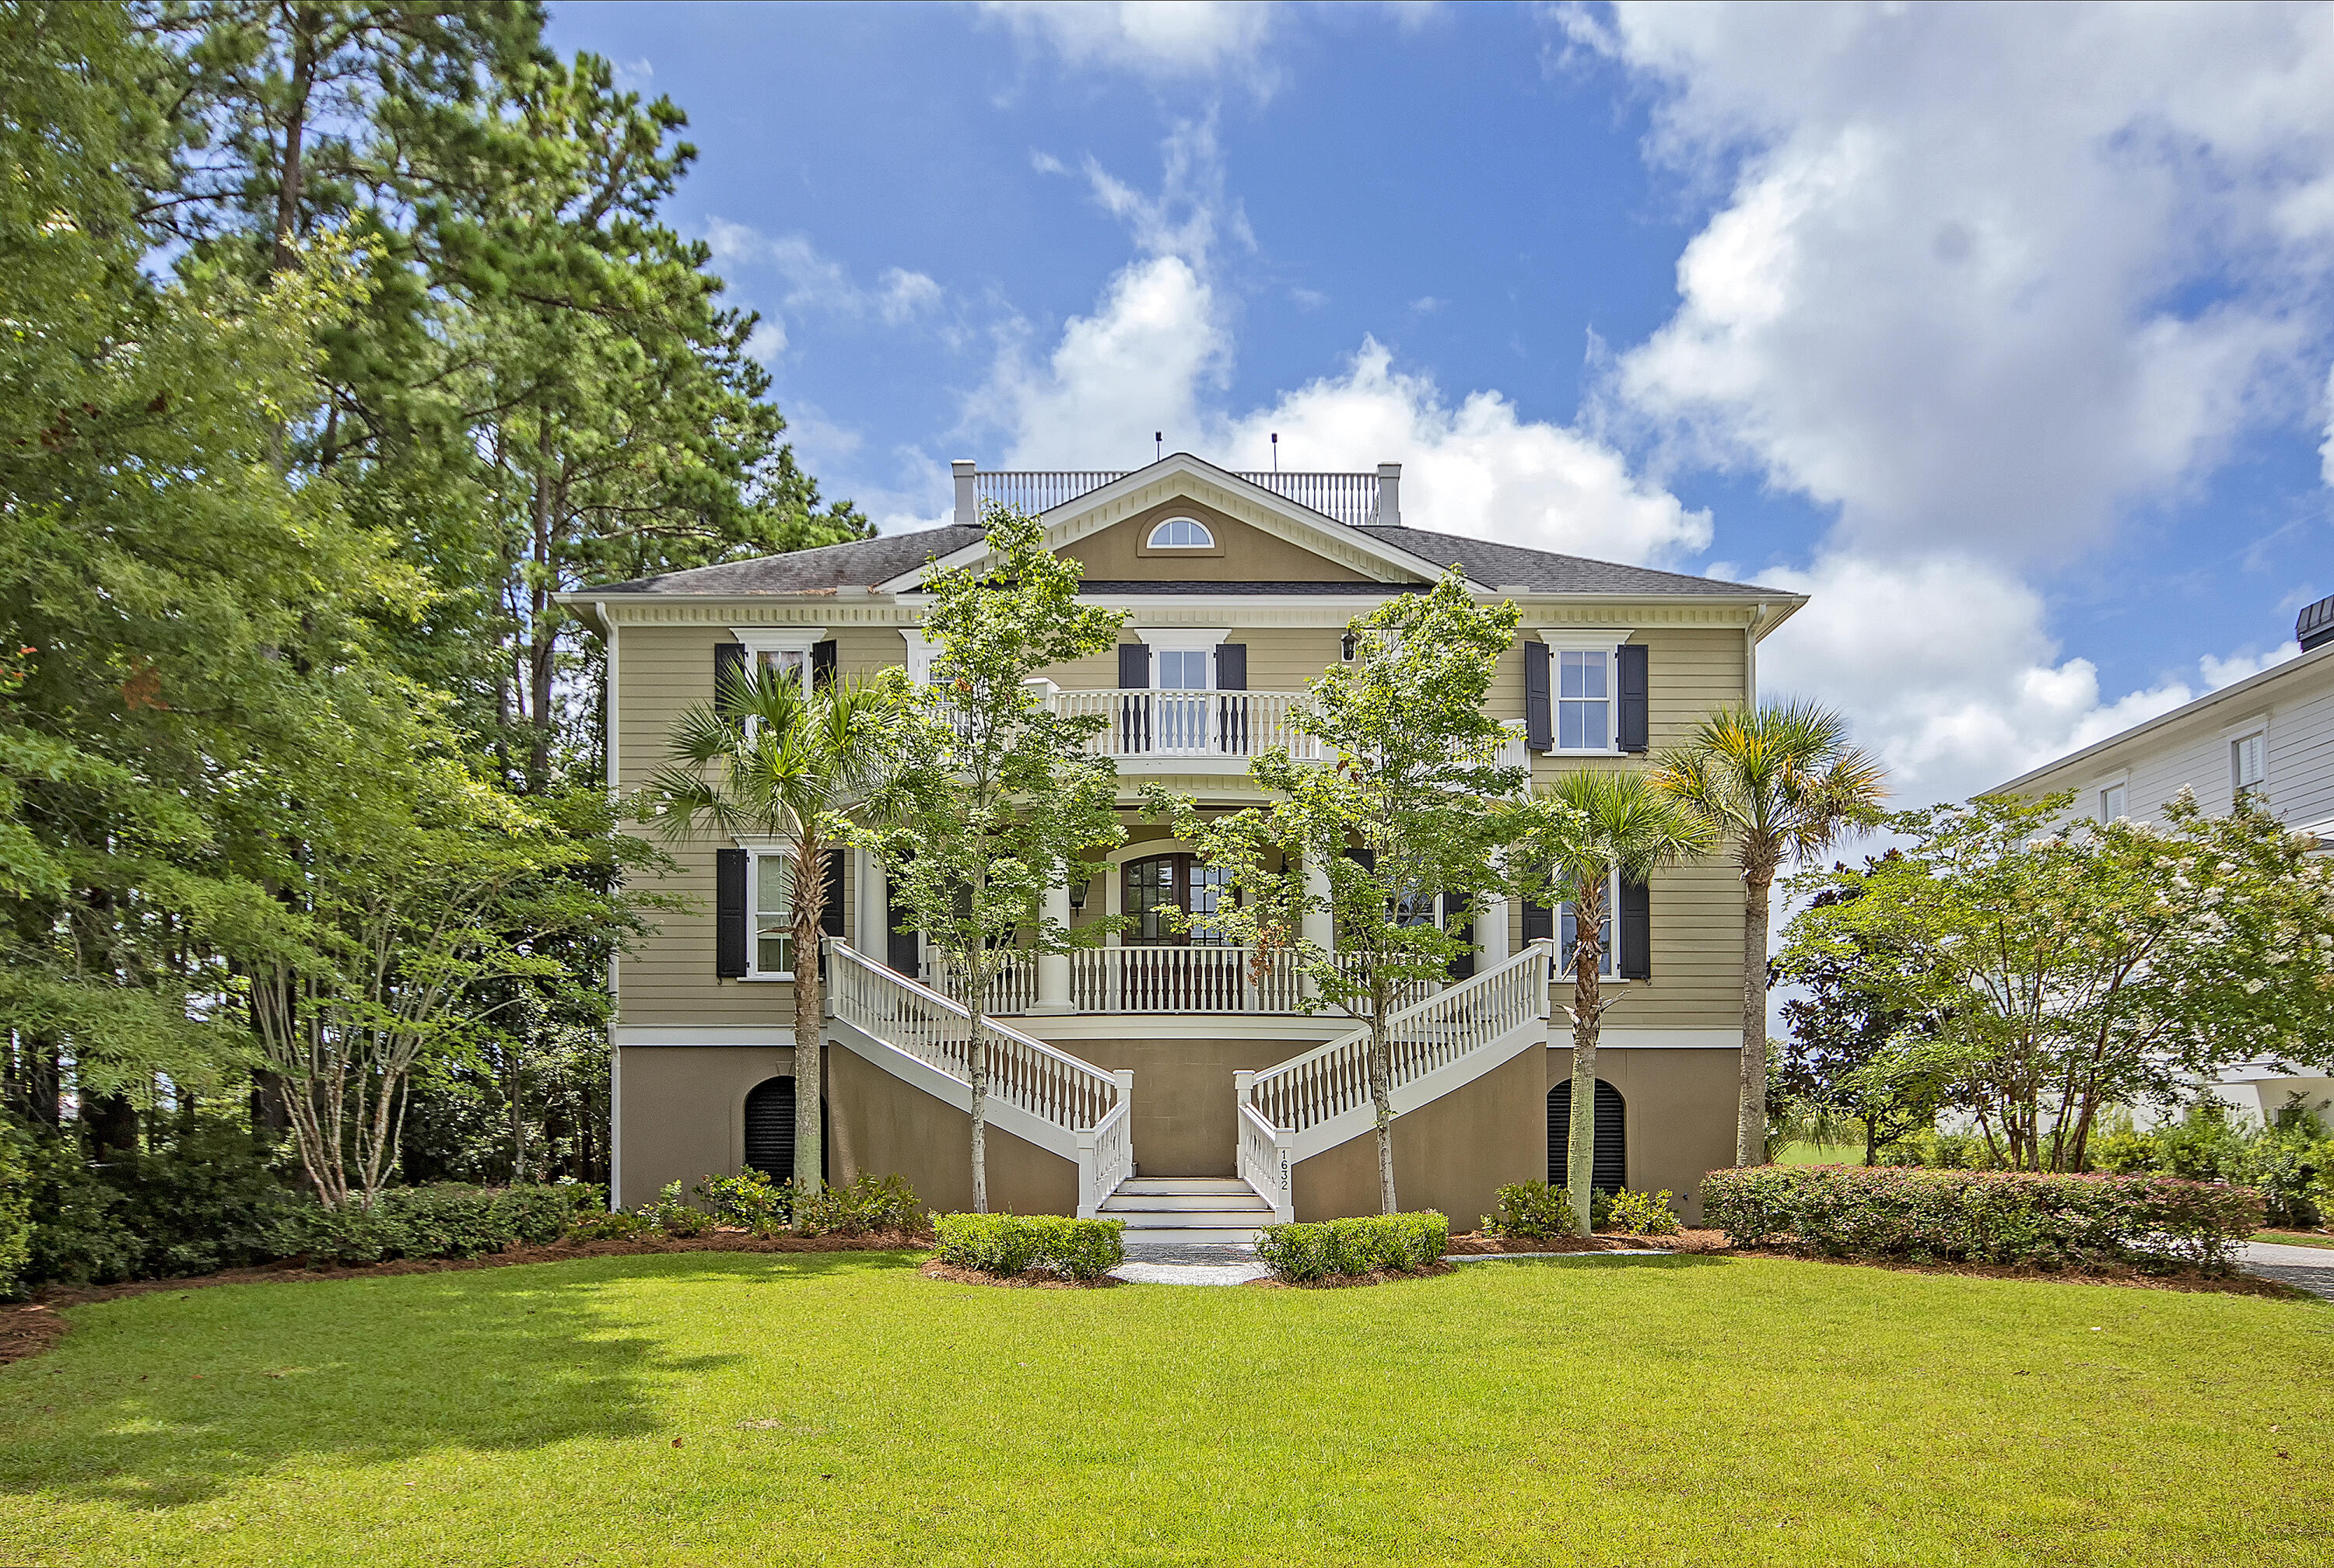 Rivertowne Country Club Homes For Sale - 1632 Rivertowne Country Club, Mount Pleasant, SC - 5